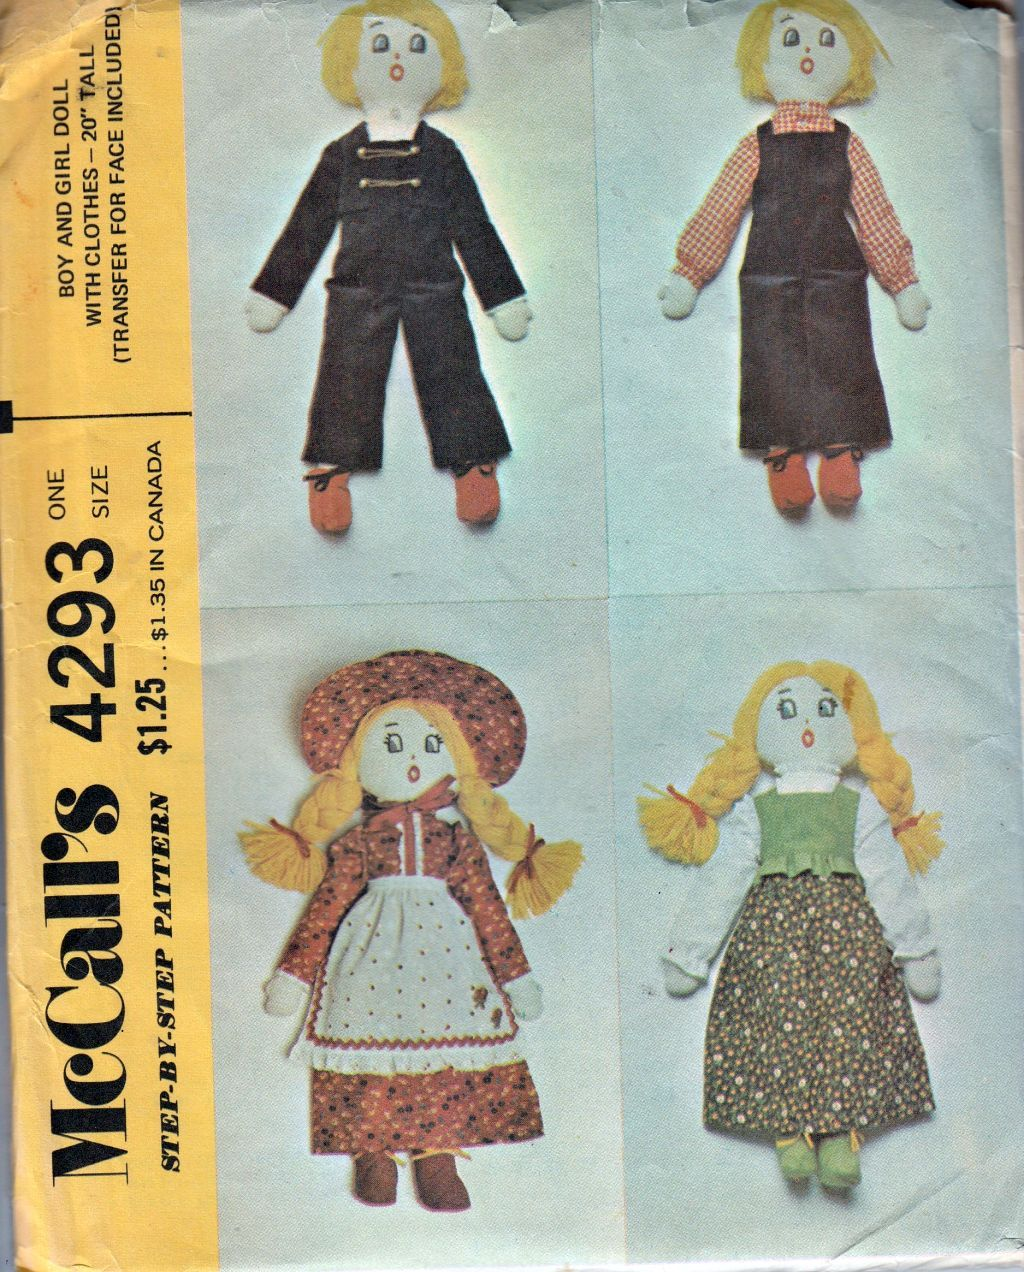 McCalls 4293 Vintage Doll with Clothes Craft Sewing Pattern - VintageStitching - Vintage Sewing Patterns